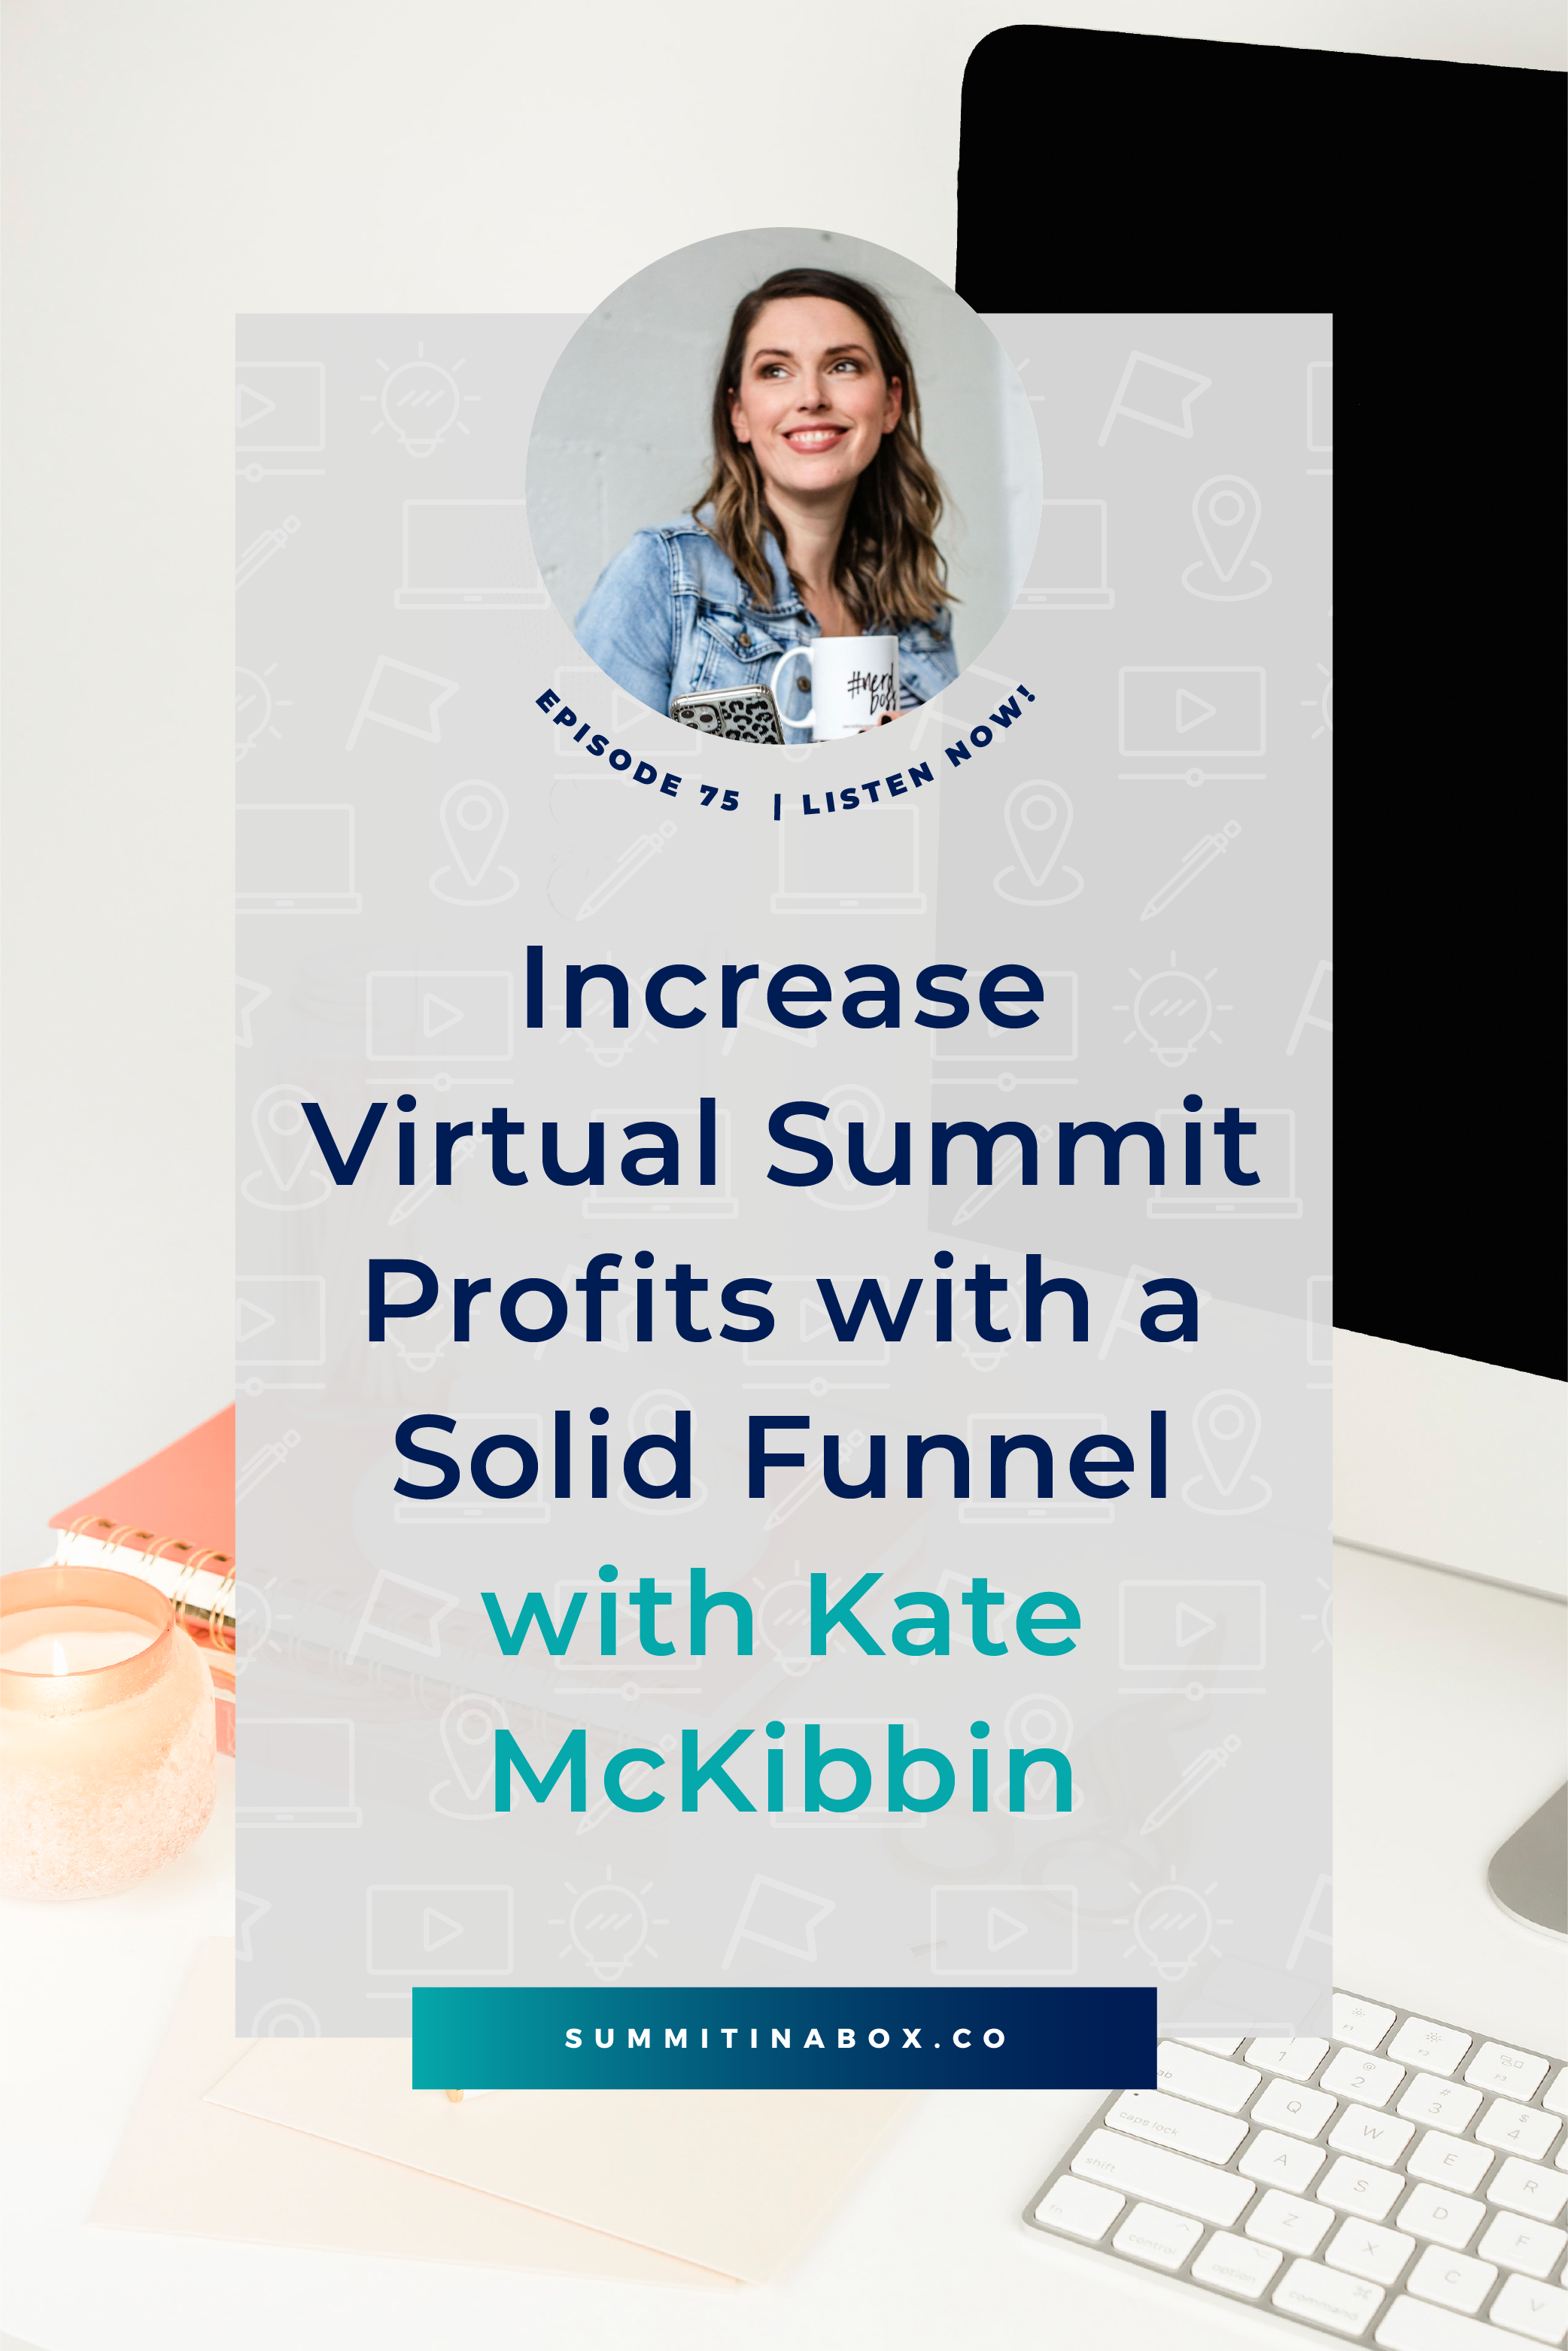 Adding a high-converting funnel to your virtual summit can bring it to a whole new level. Let's cover how to increase virtual summit profits through a funnel.